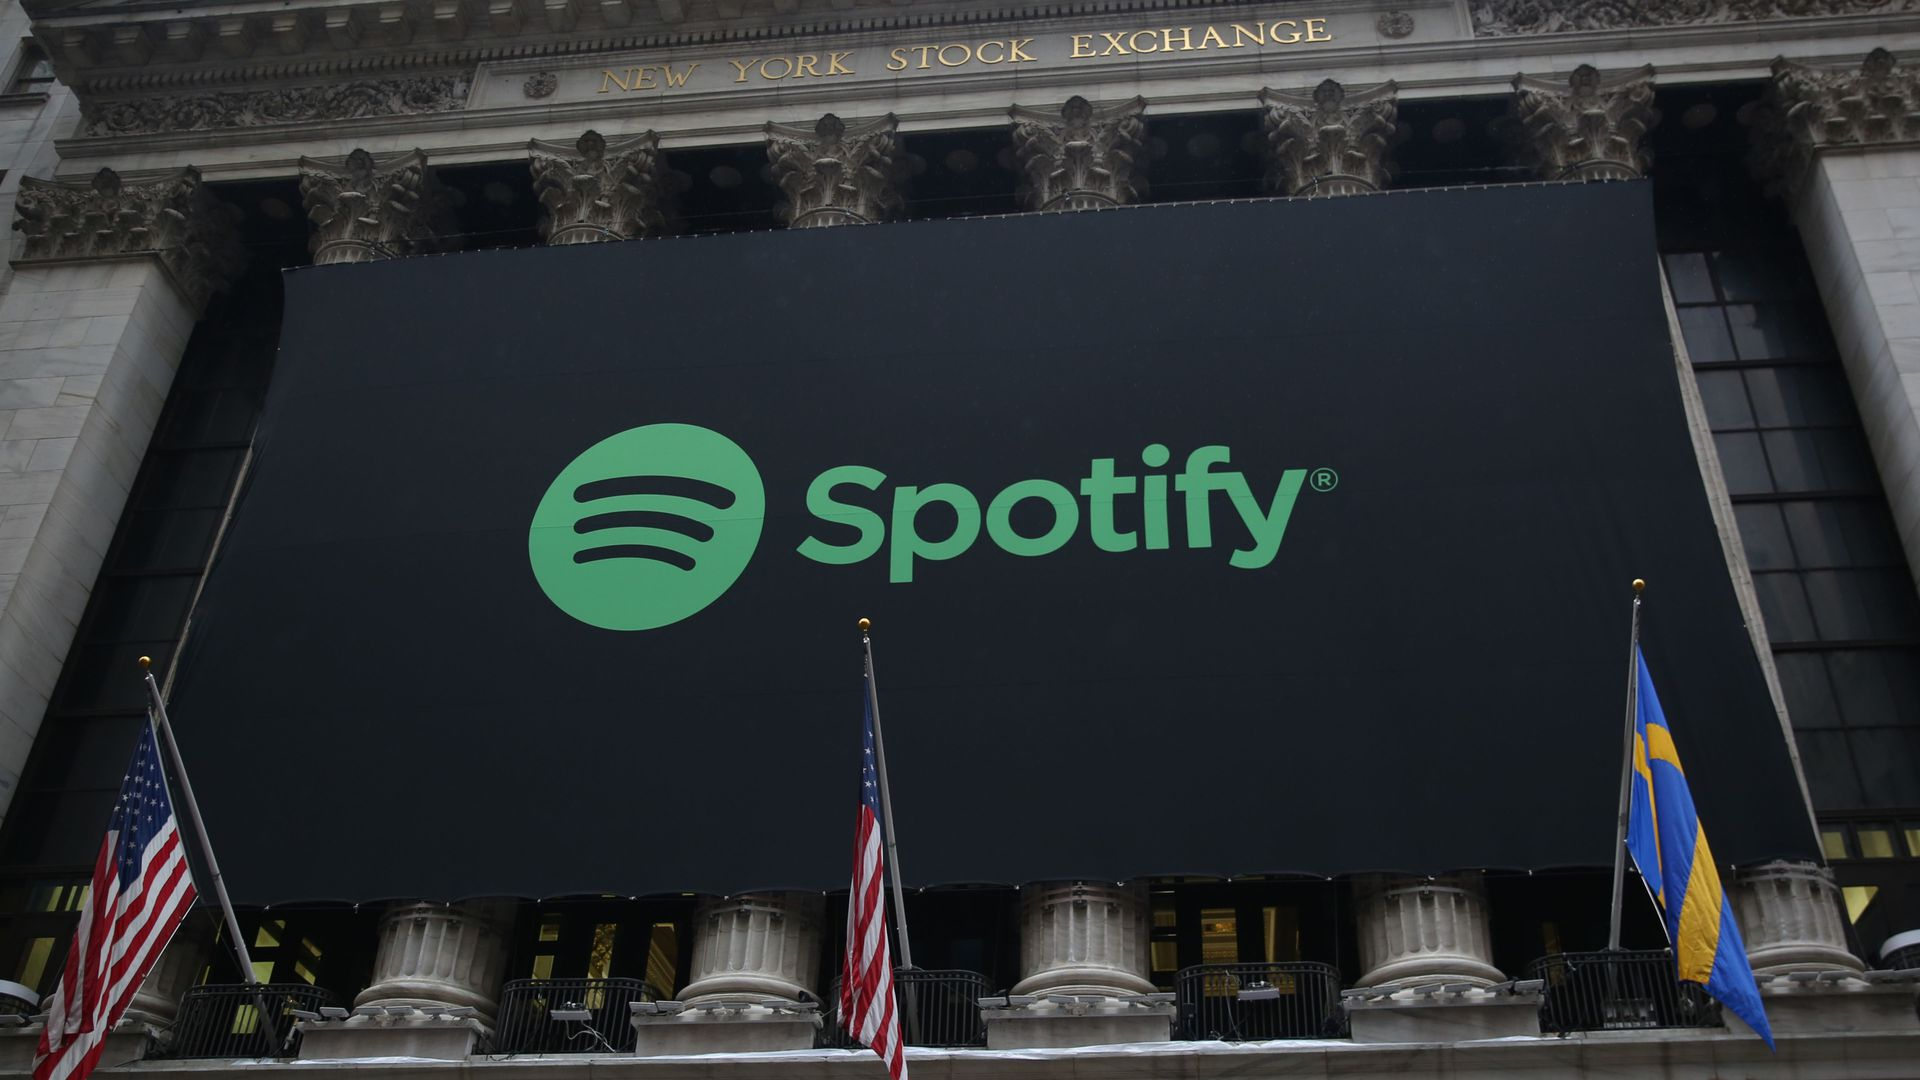 Spotify logo above the NYSE.